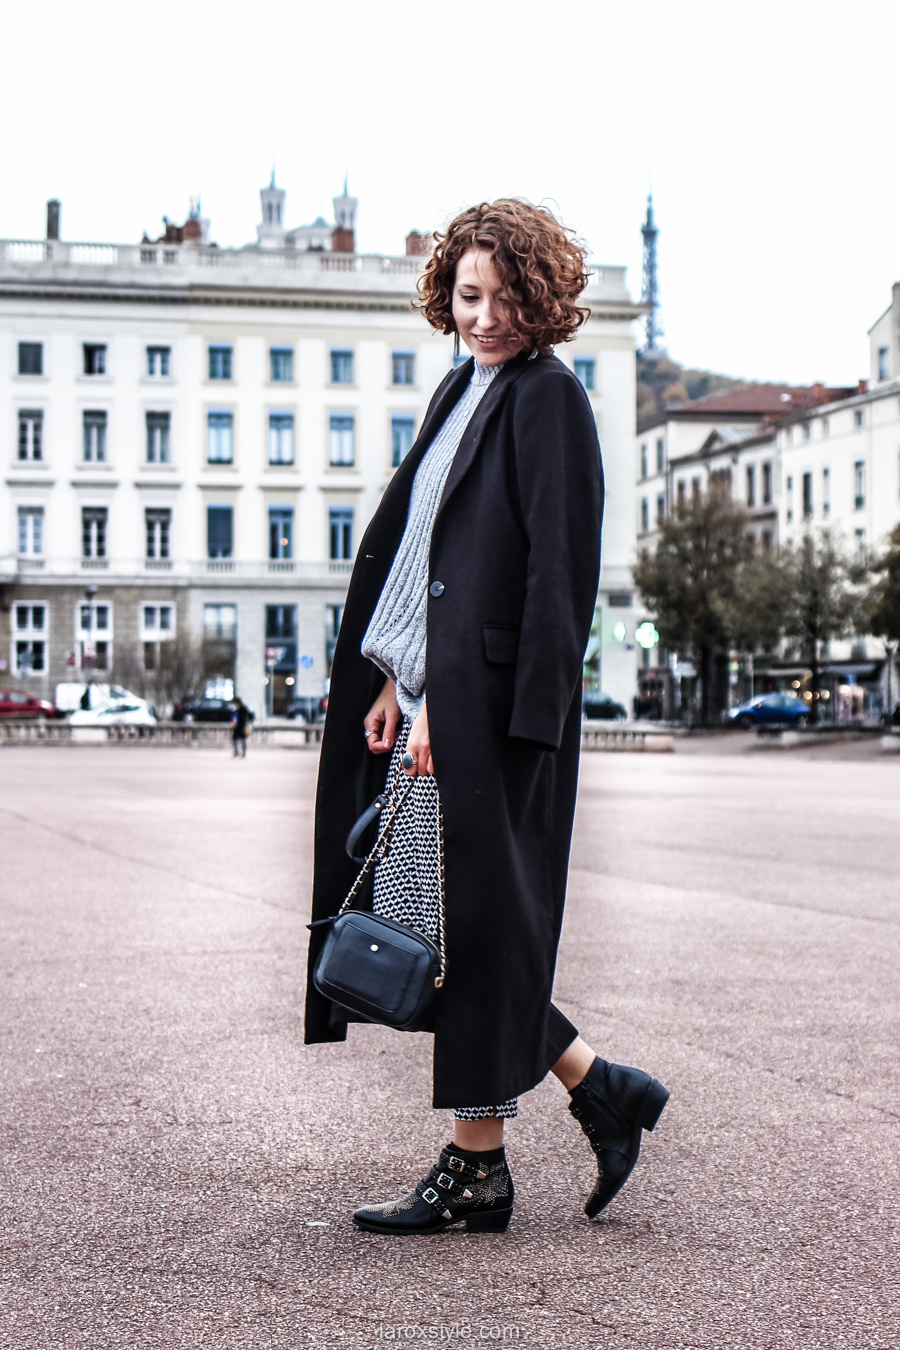 Comment porter le pull Oversize ?